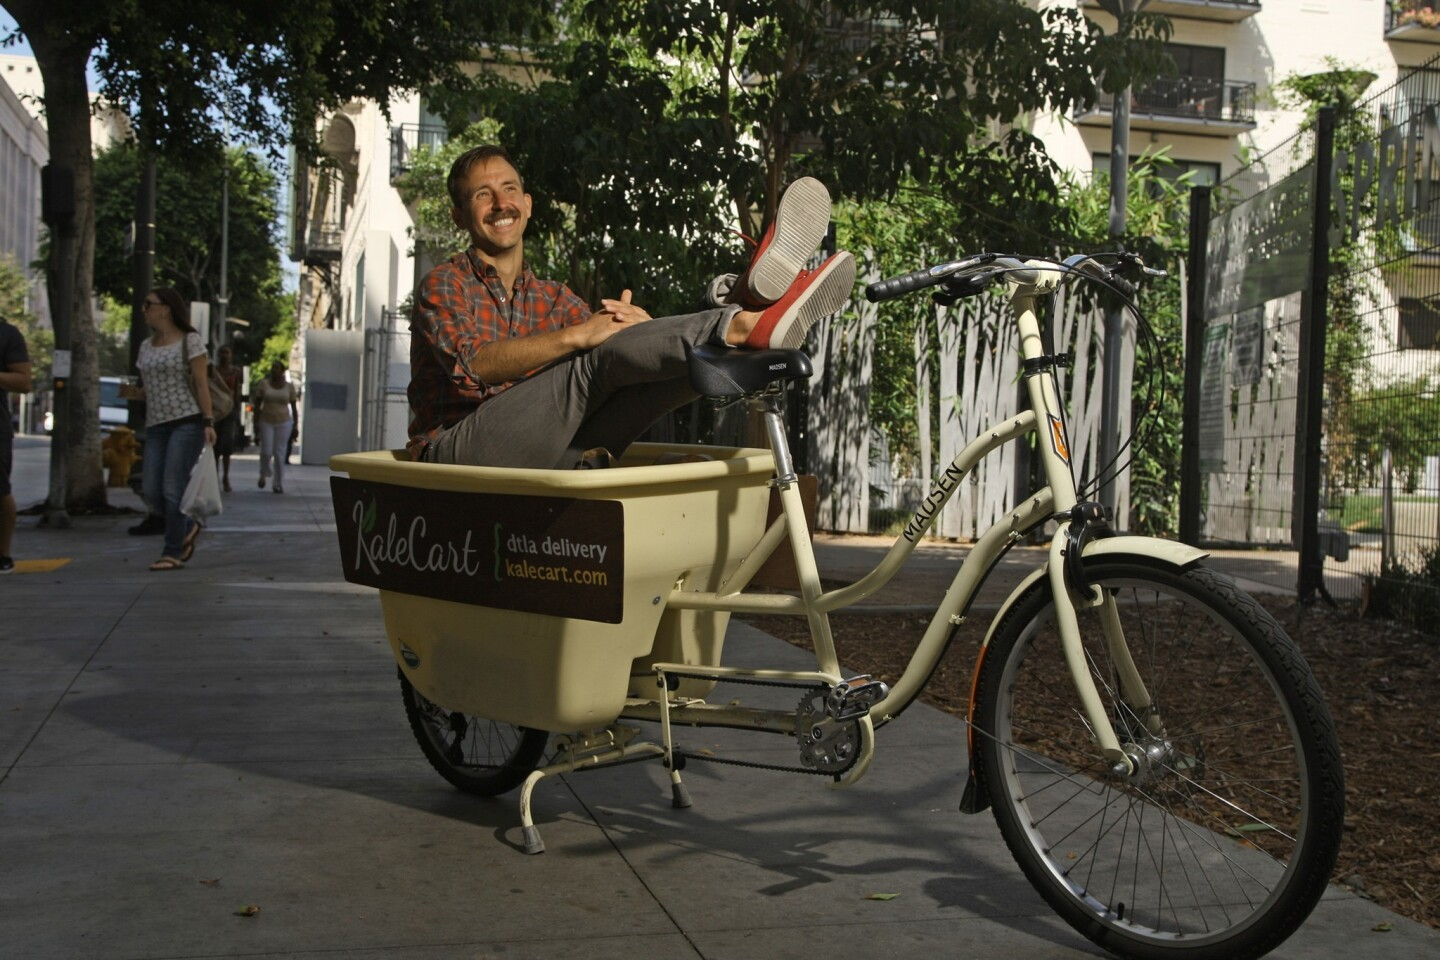 Ryan Matteson of Kale Cart uses a bike with trailer for deliveries in downtown L.A. The service relies solely on bicycles to bring customers their goods.